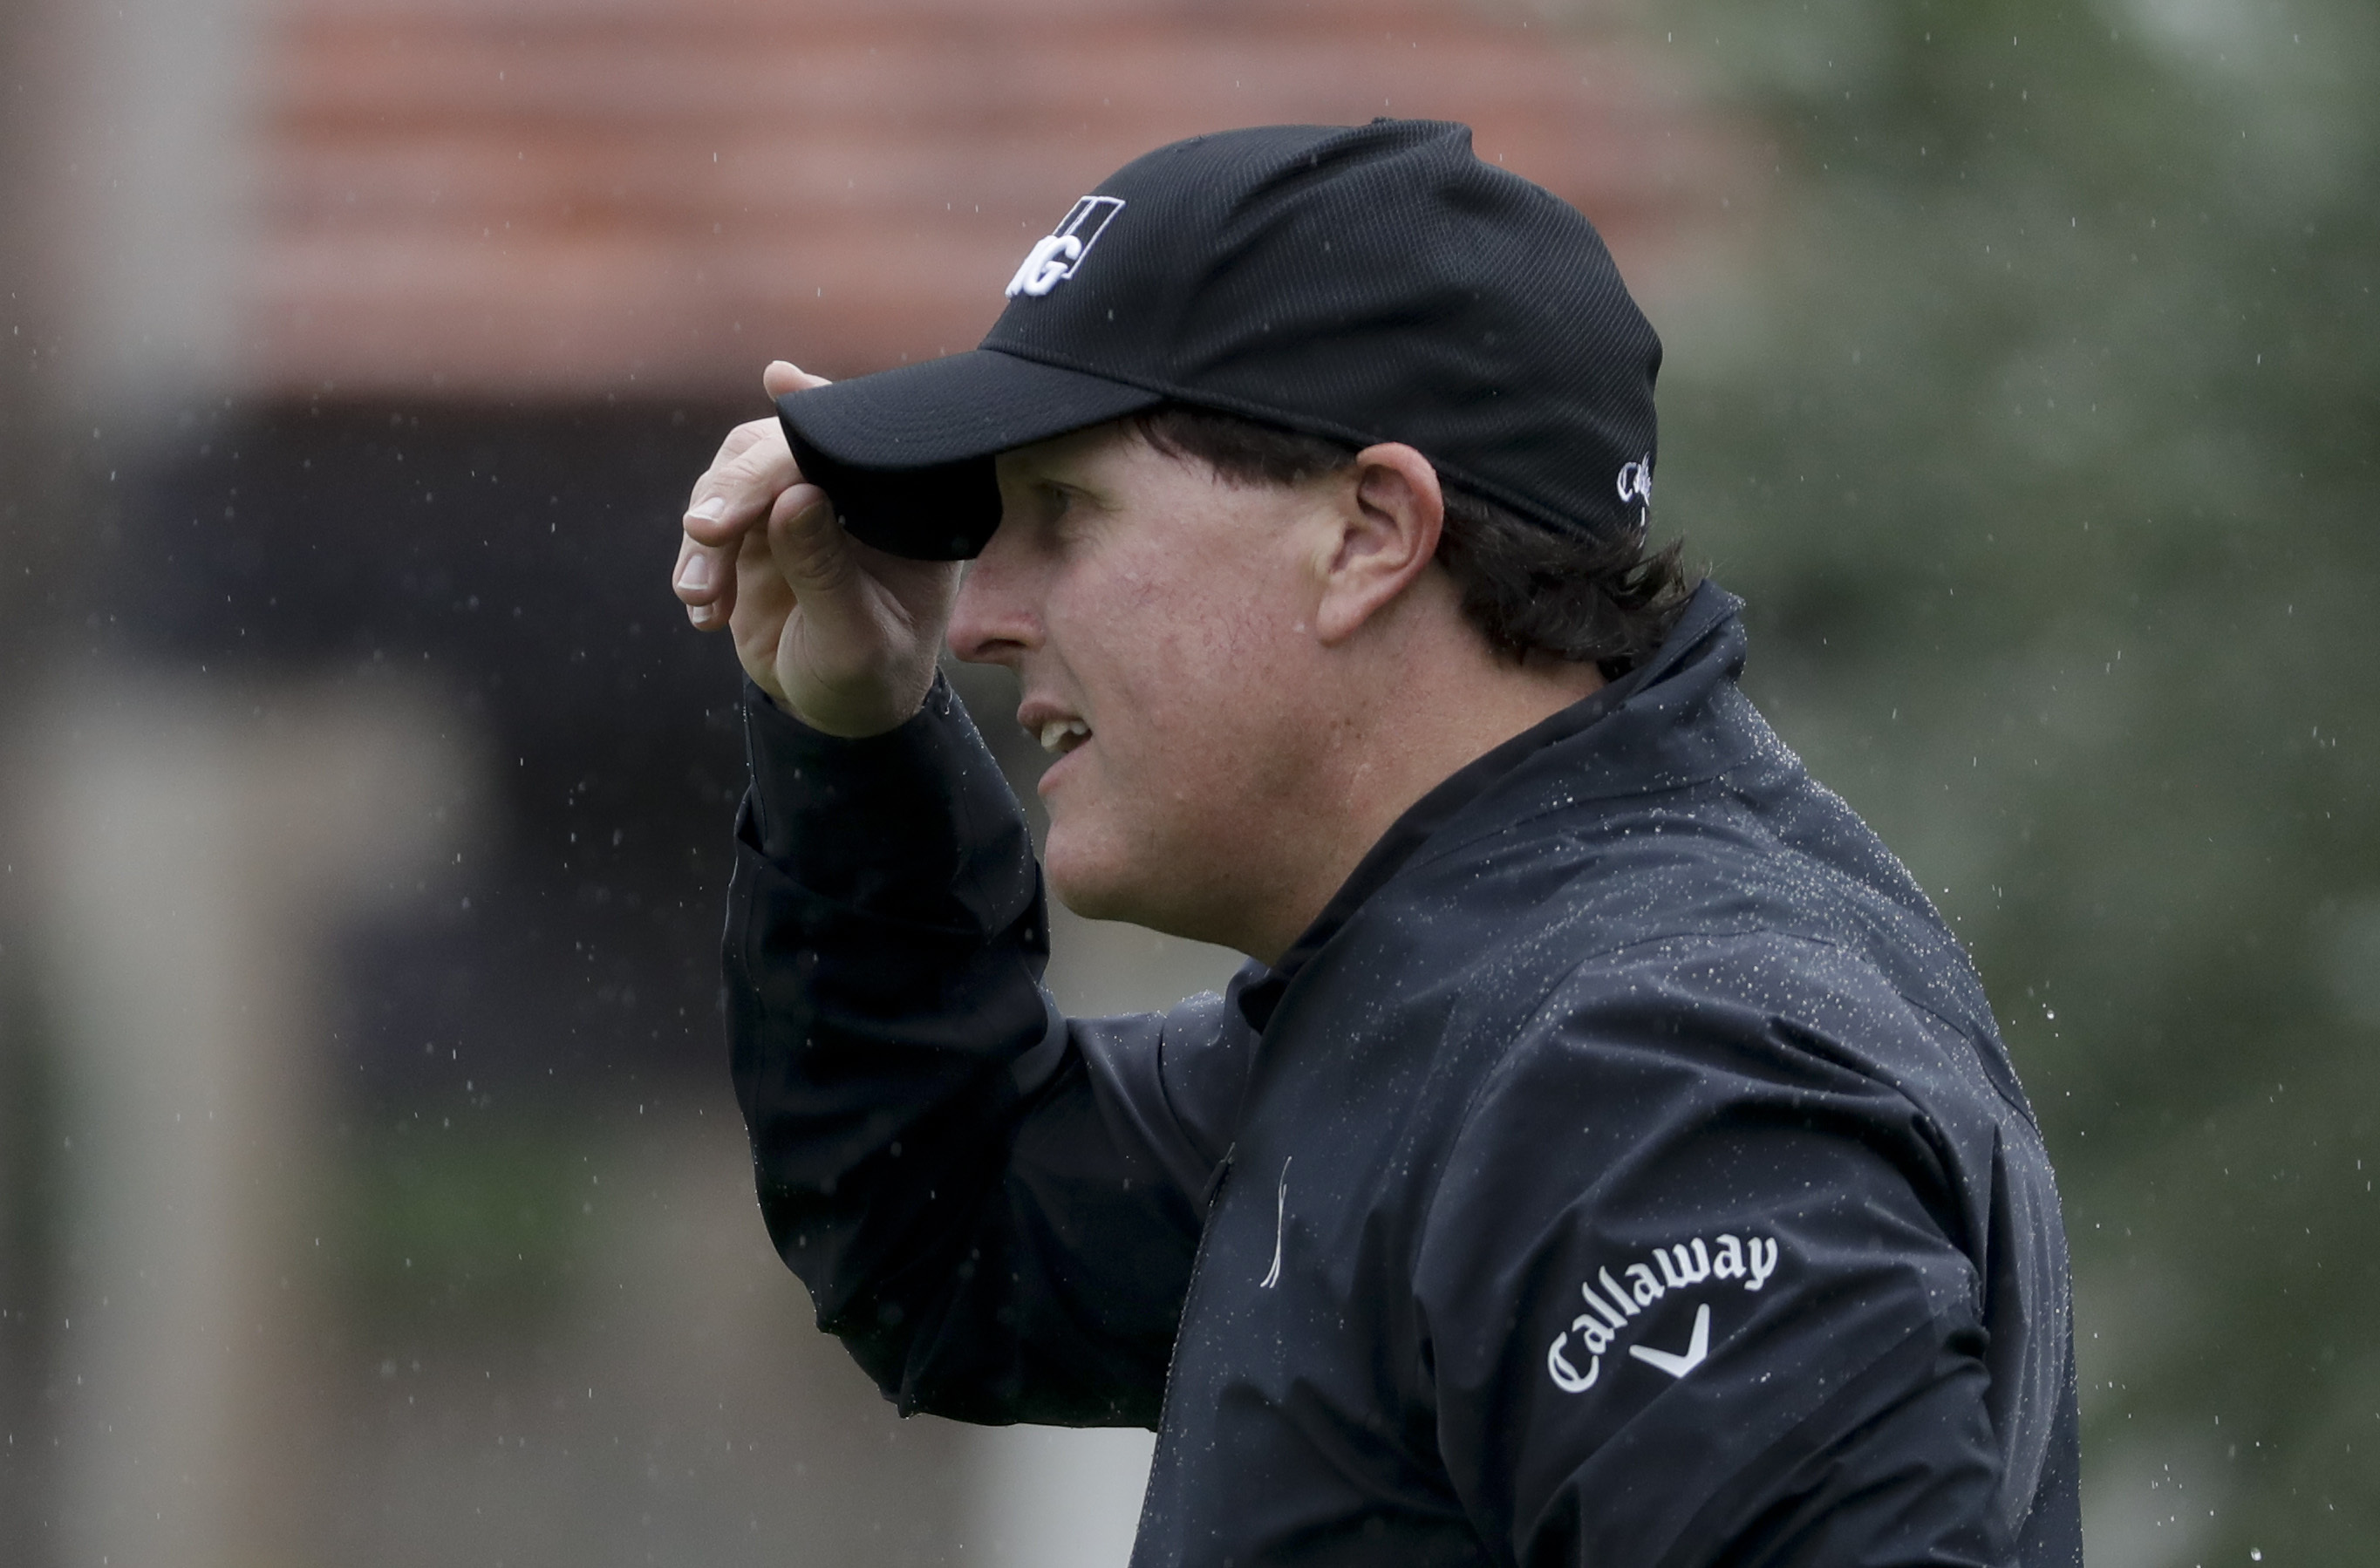 Phil Mickelson reacts after making a putt on the third hole during the first round of the CareerBuilder Challenge at the La Quinta County Club Thursday, Jan. 19, 2017 in La Quinta, Calif. (AP Photo/Chris Carlson)